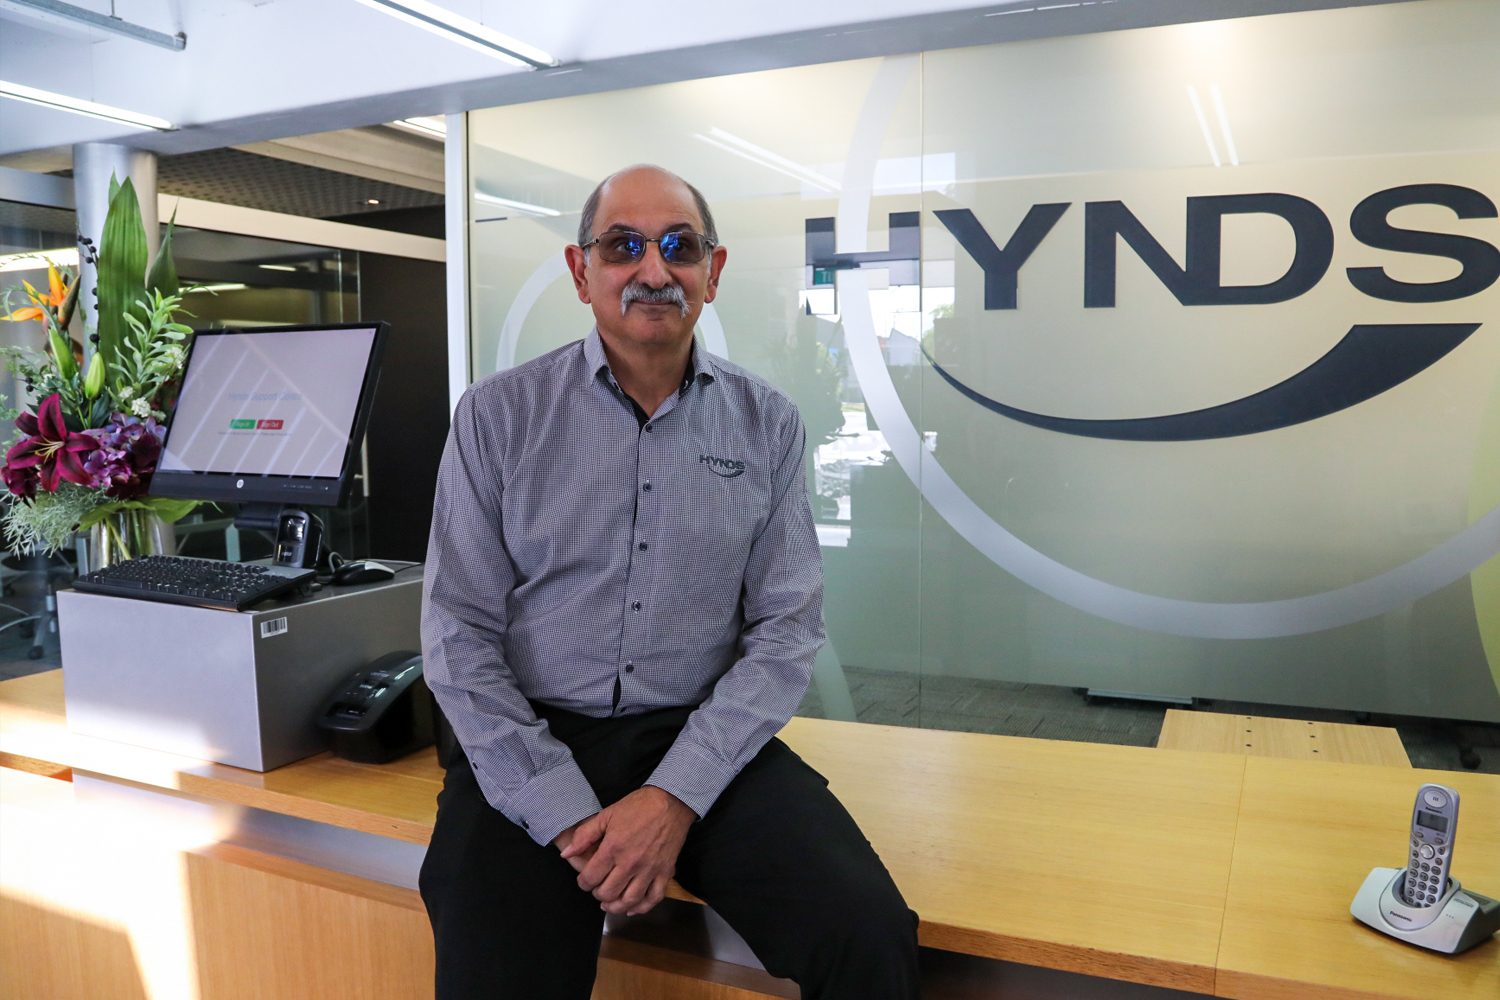 Americo dos Santos Hynds Technical Services Manager now a Fellow of Engineers